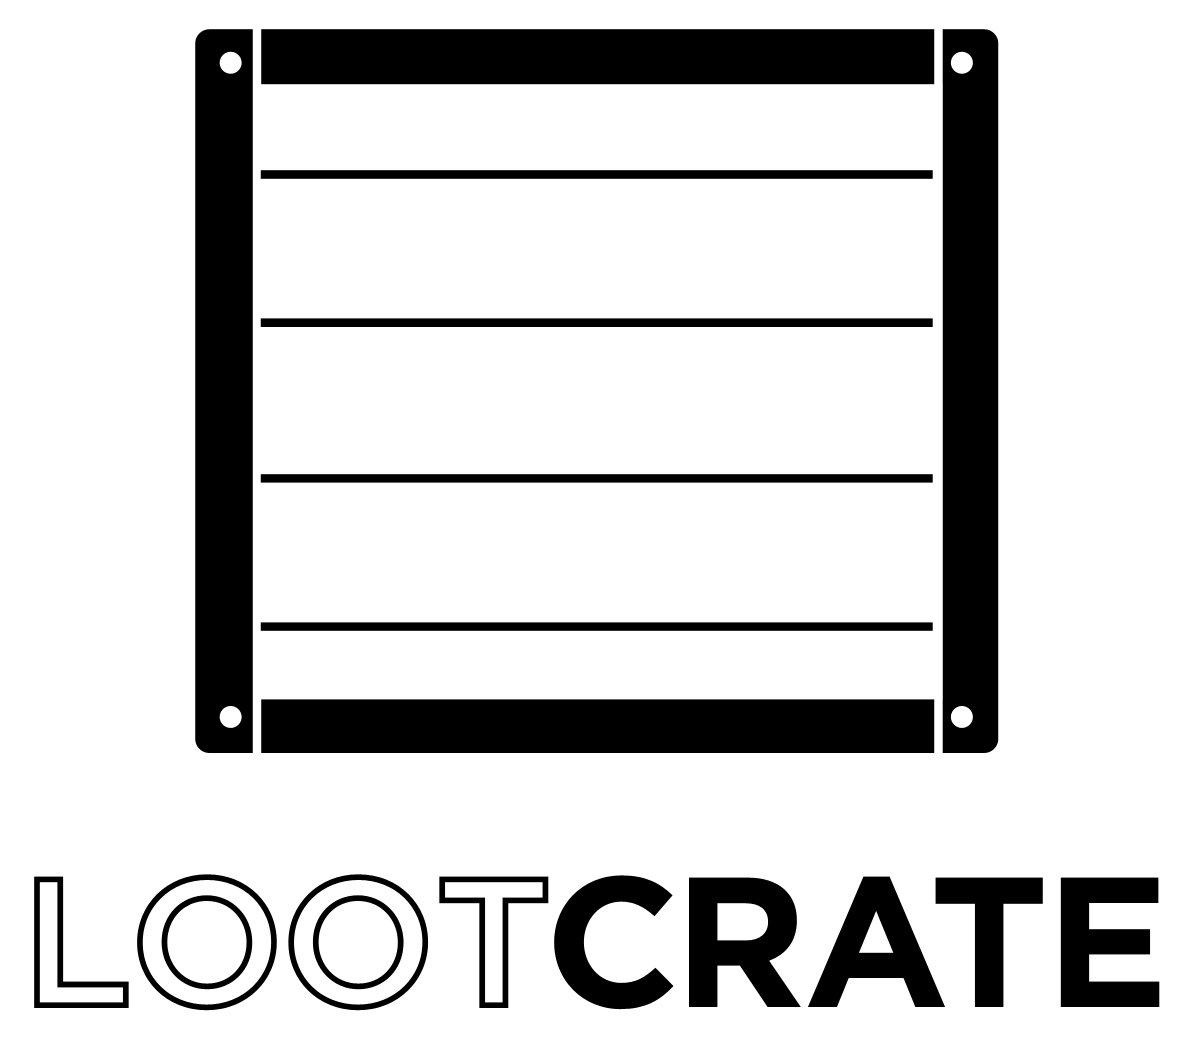 Loot boxes png. Crate villains unboxing flecking